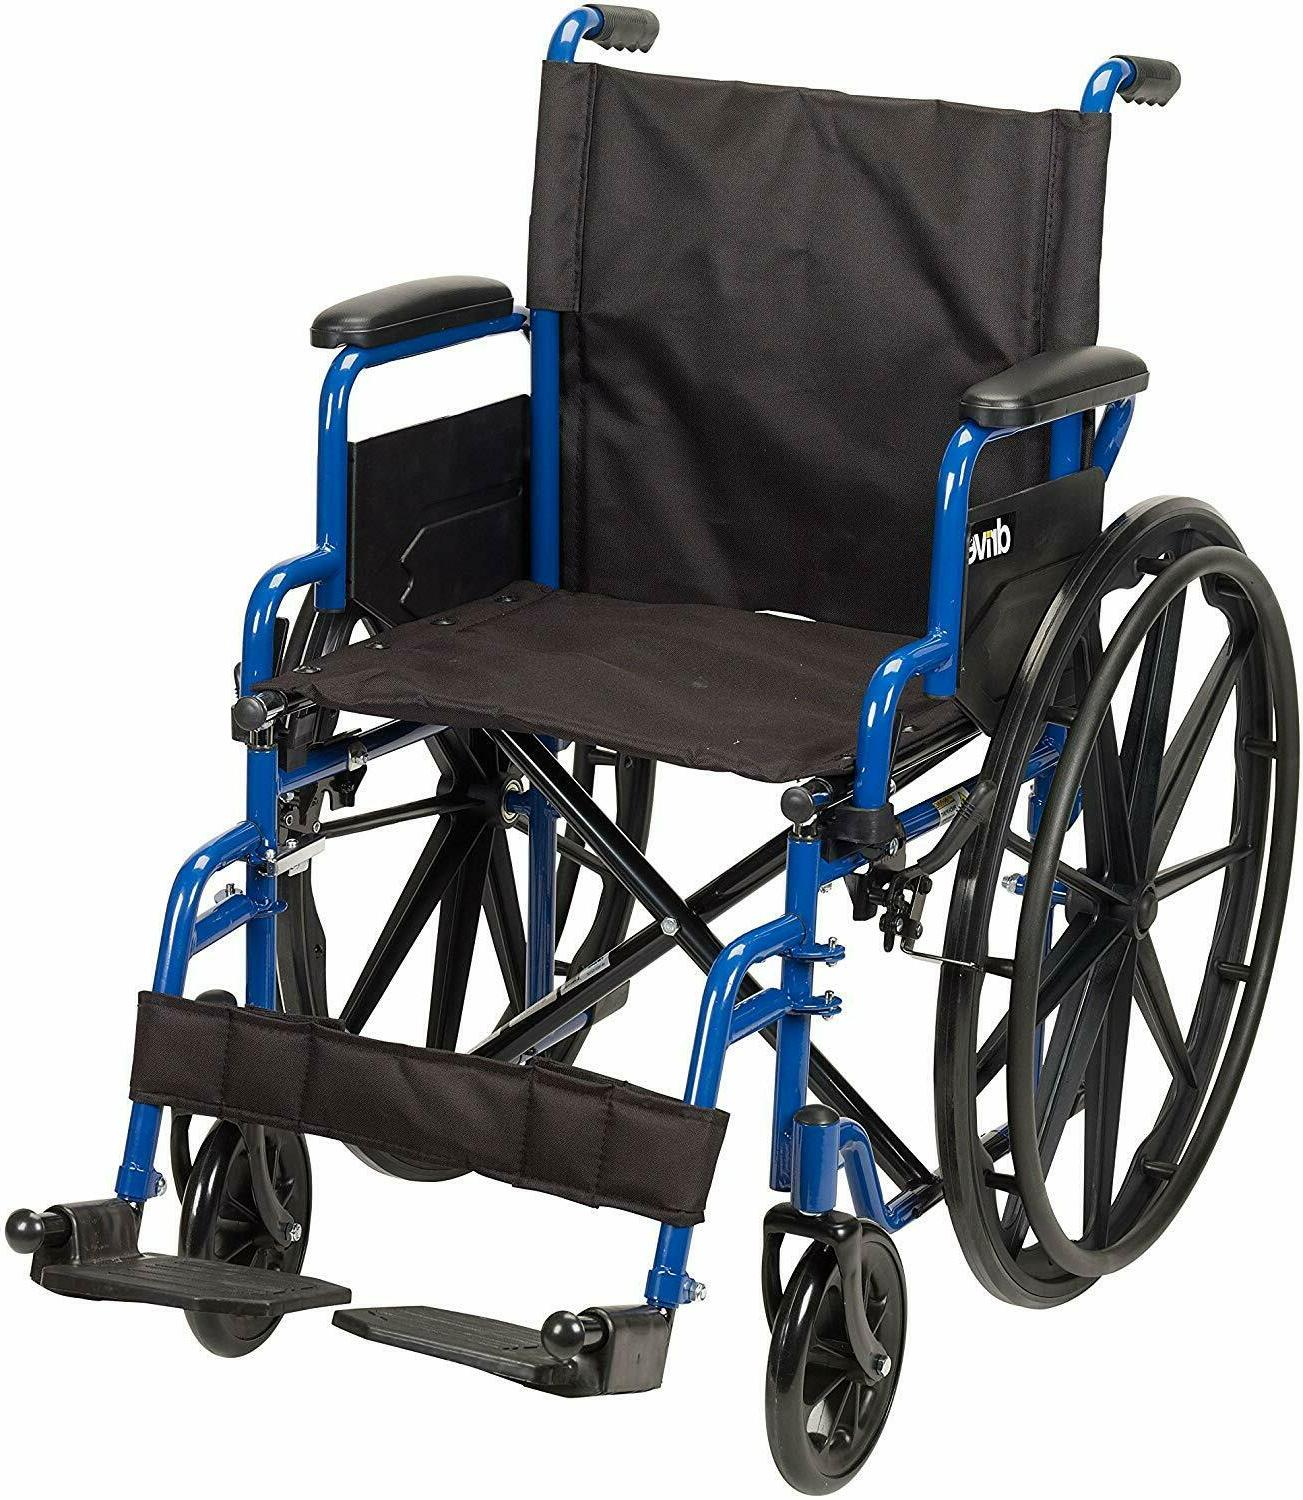 Drive Blue Wheelchair Desk Arms, Away